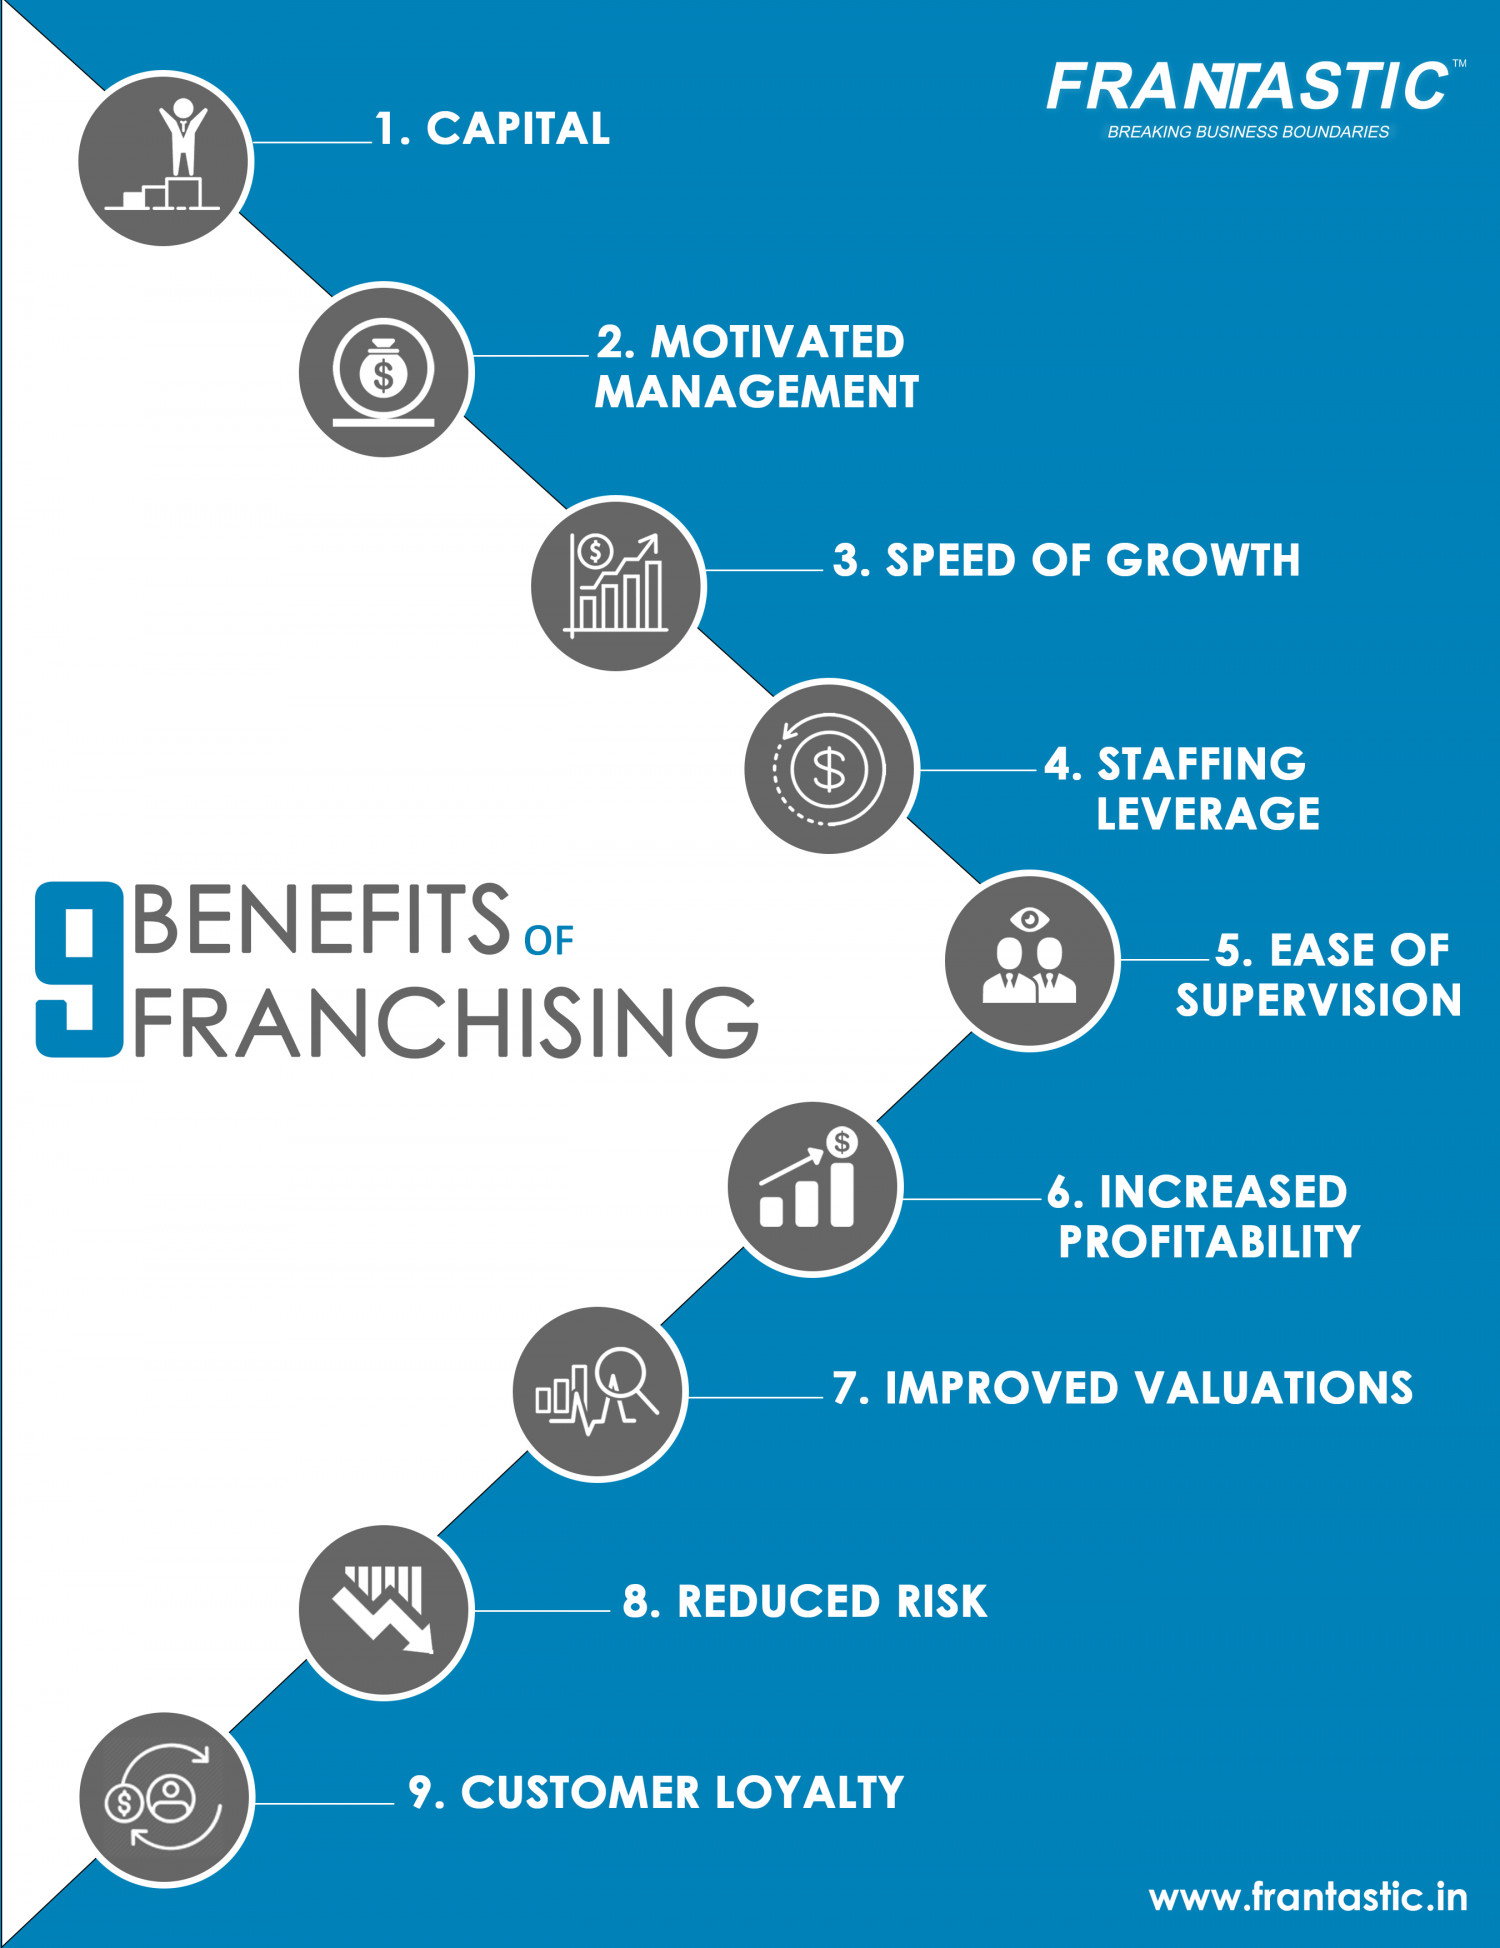 9 Benefits of Franchising Infographic